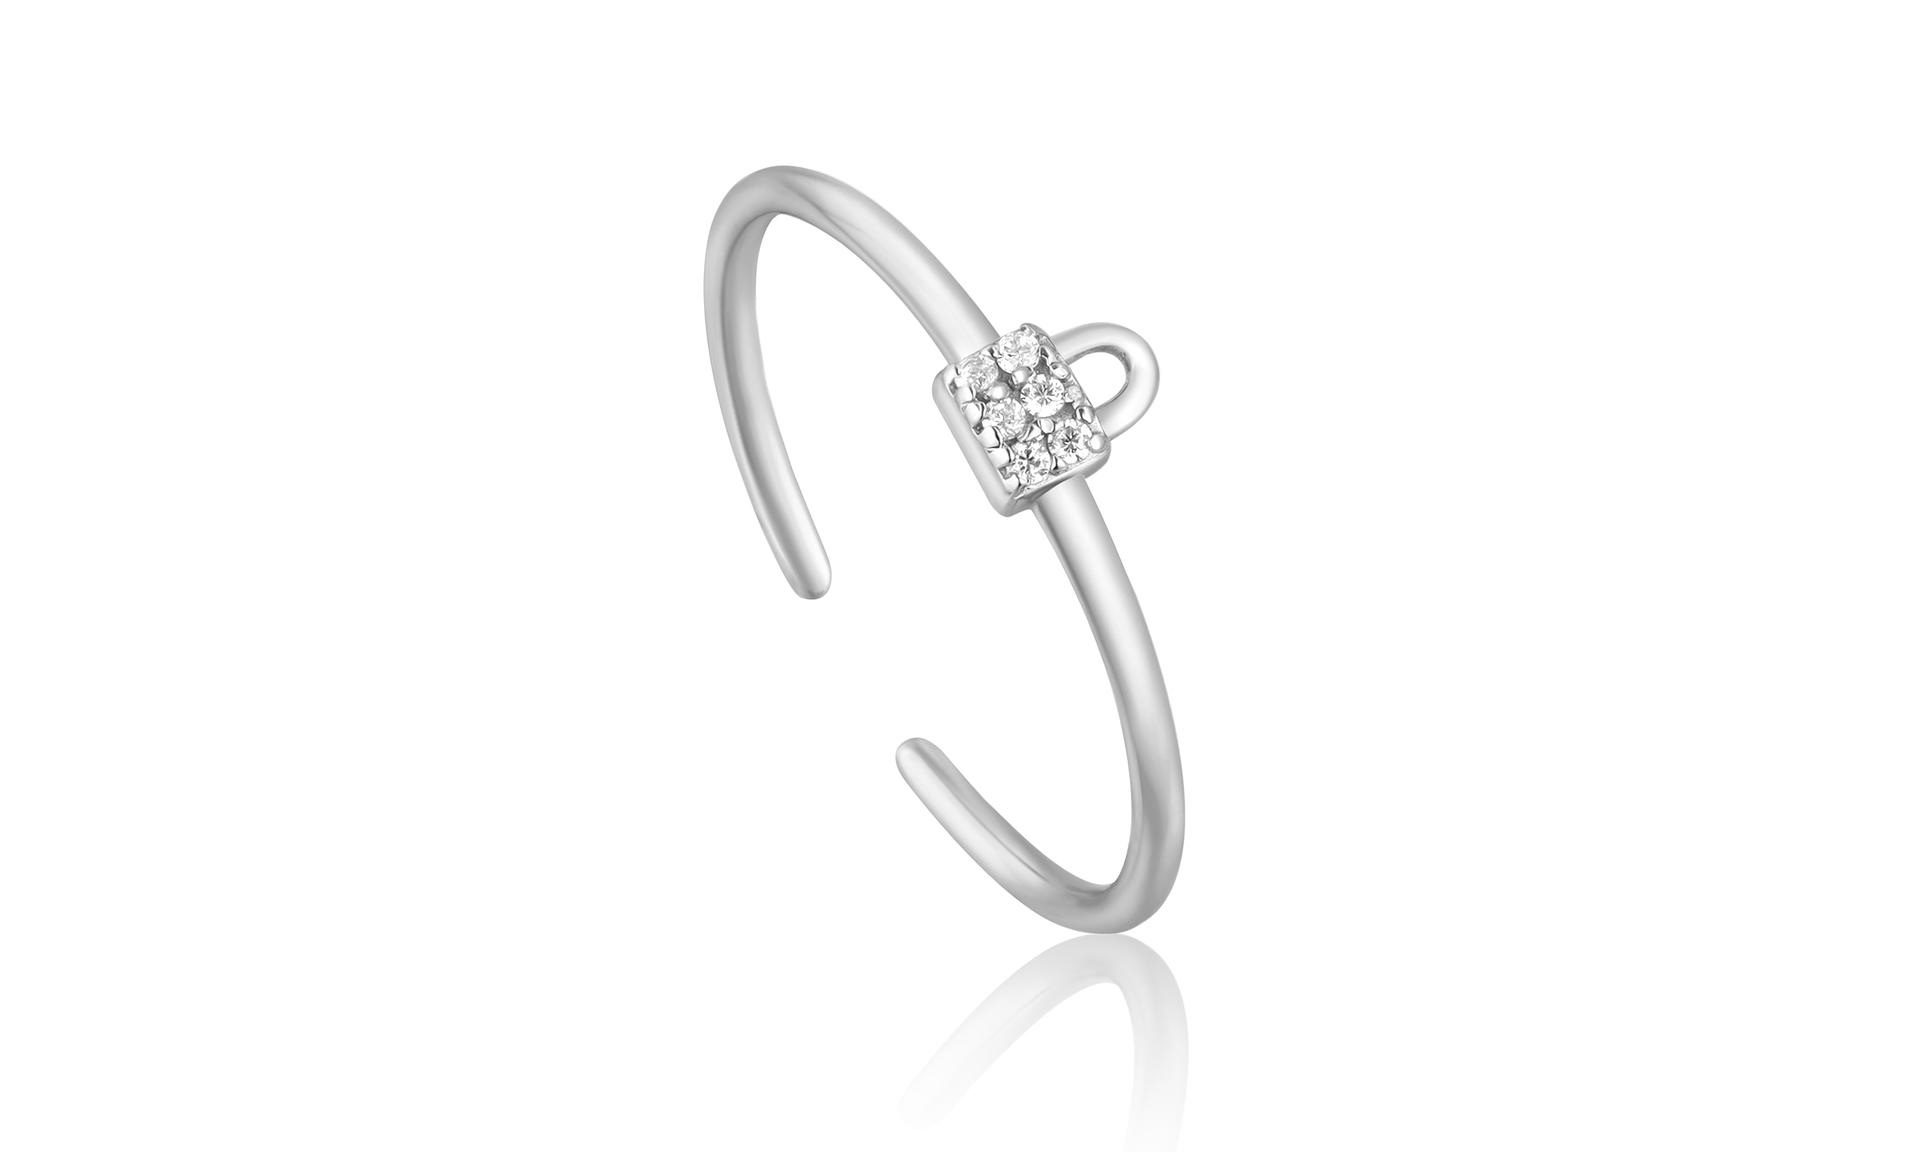 Ania Haie launches Under Lock & Key collection